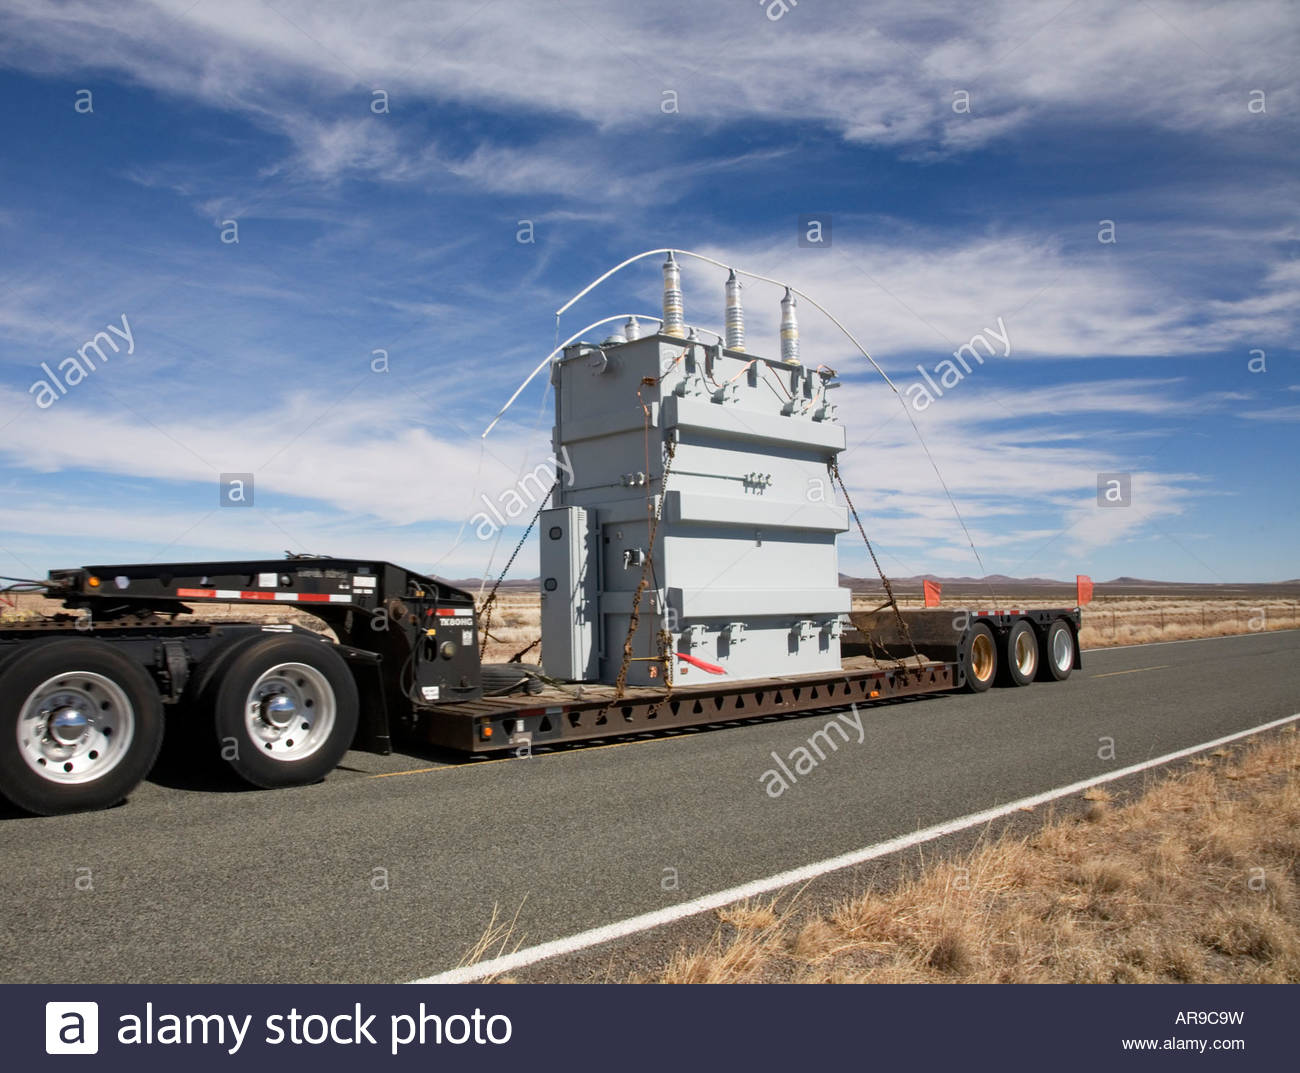 big transformer stock photos & big transformer stock images alamy single phase transformer wiring connections truck hauling wide load oversize load over size load wideload electrical transformer low boy lowboy trailer